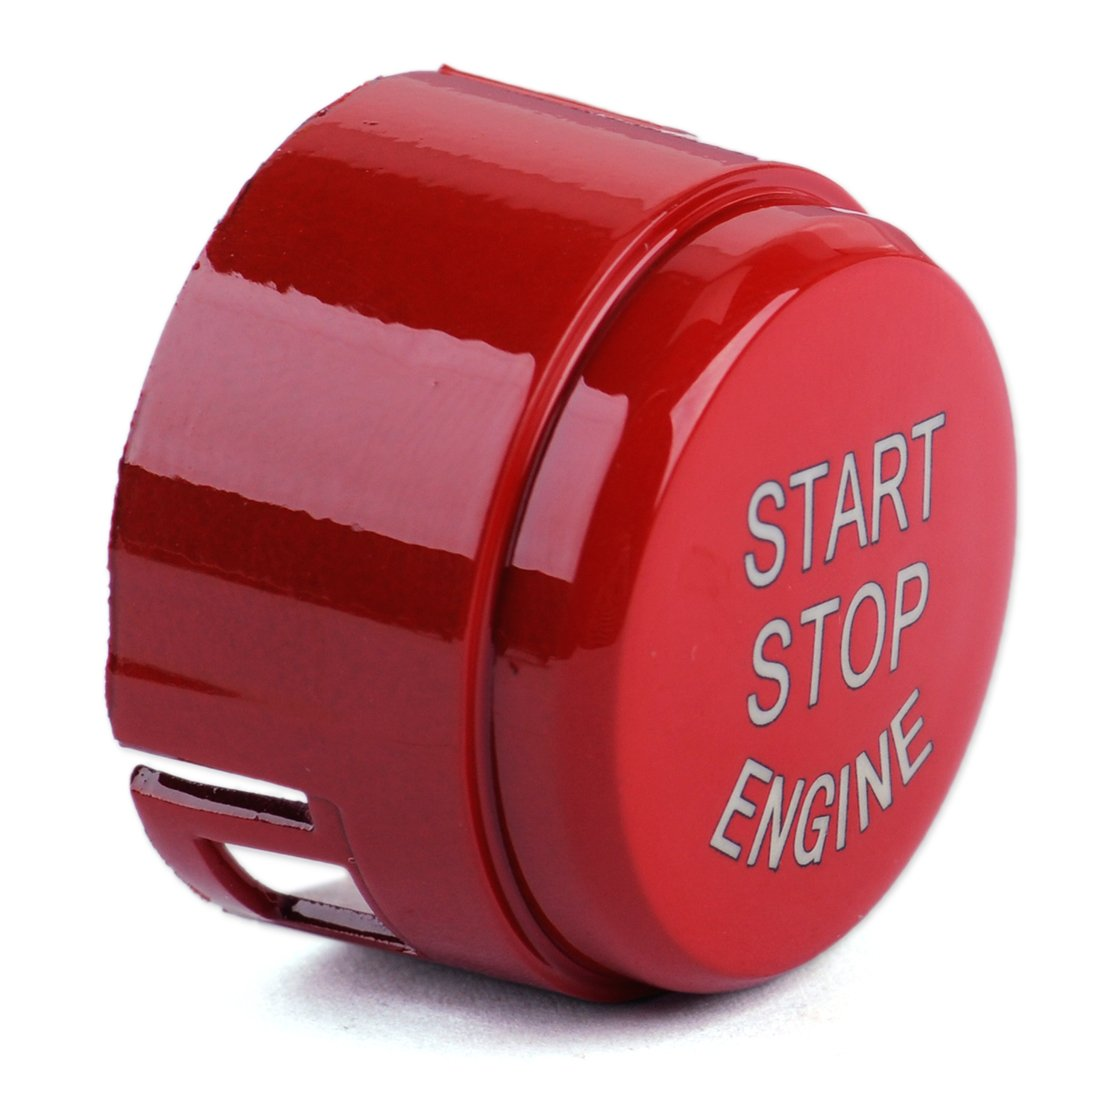 beler Red Start Stop Engine Push Button Switch Cover hermeshine